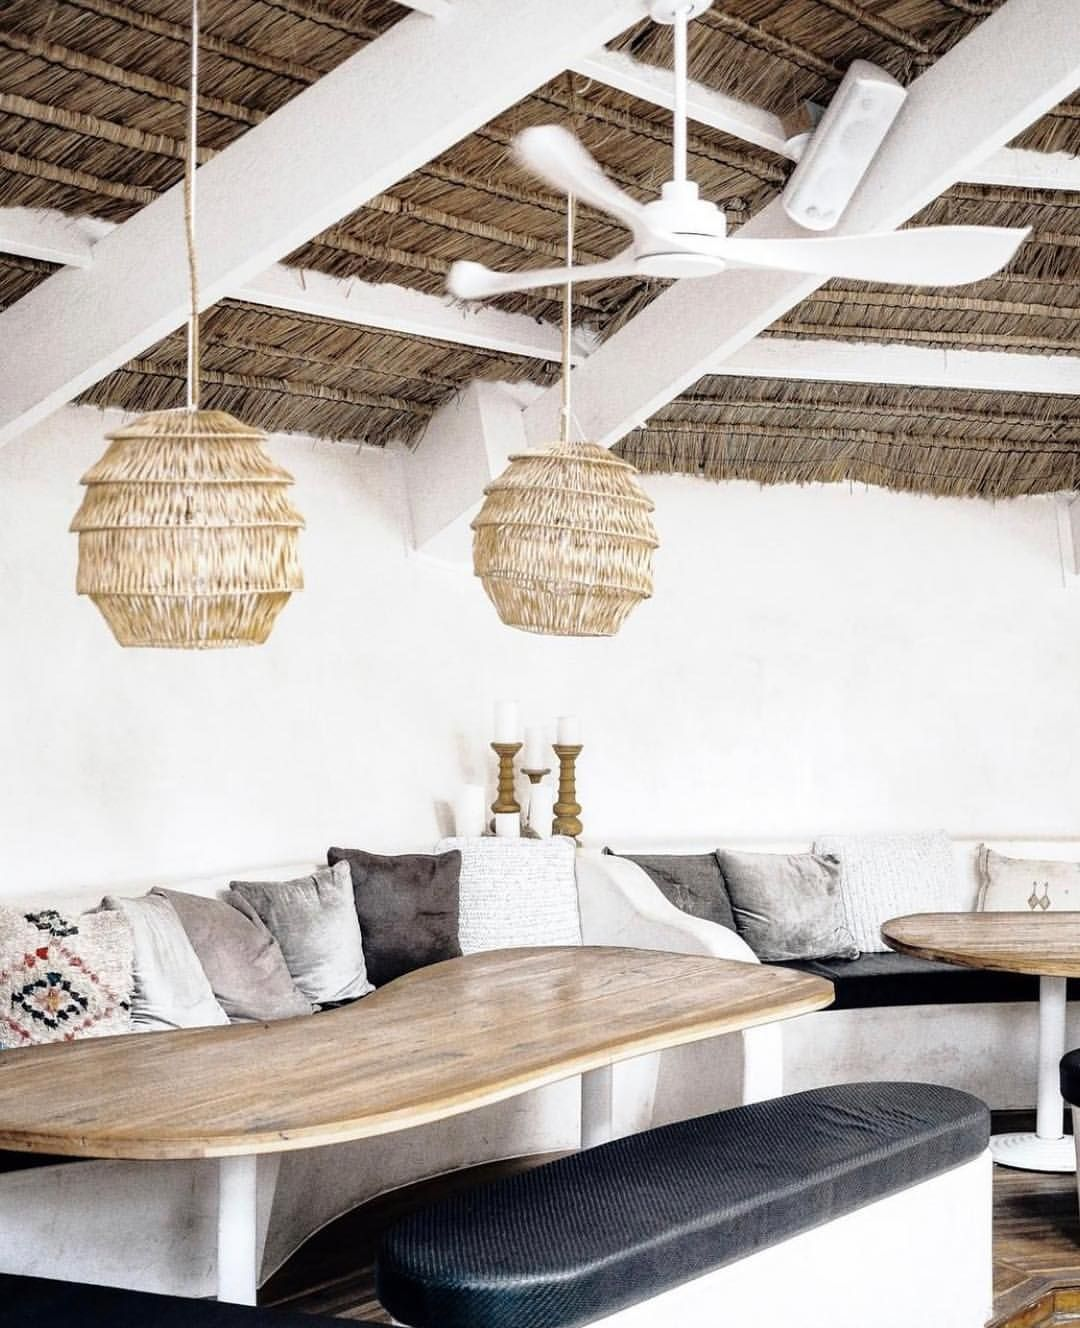 Fanatical About This Space Pun Intended Loving The Coastal Vibe At Themezclub In Australia S Byron Bay The Rustic Thatch In 2020 Thatched Roof New Homes Thatch